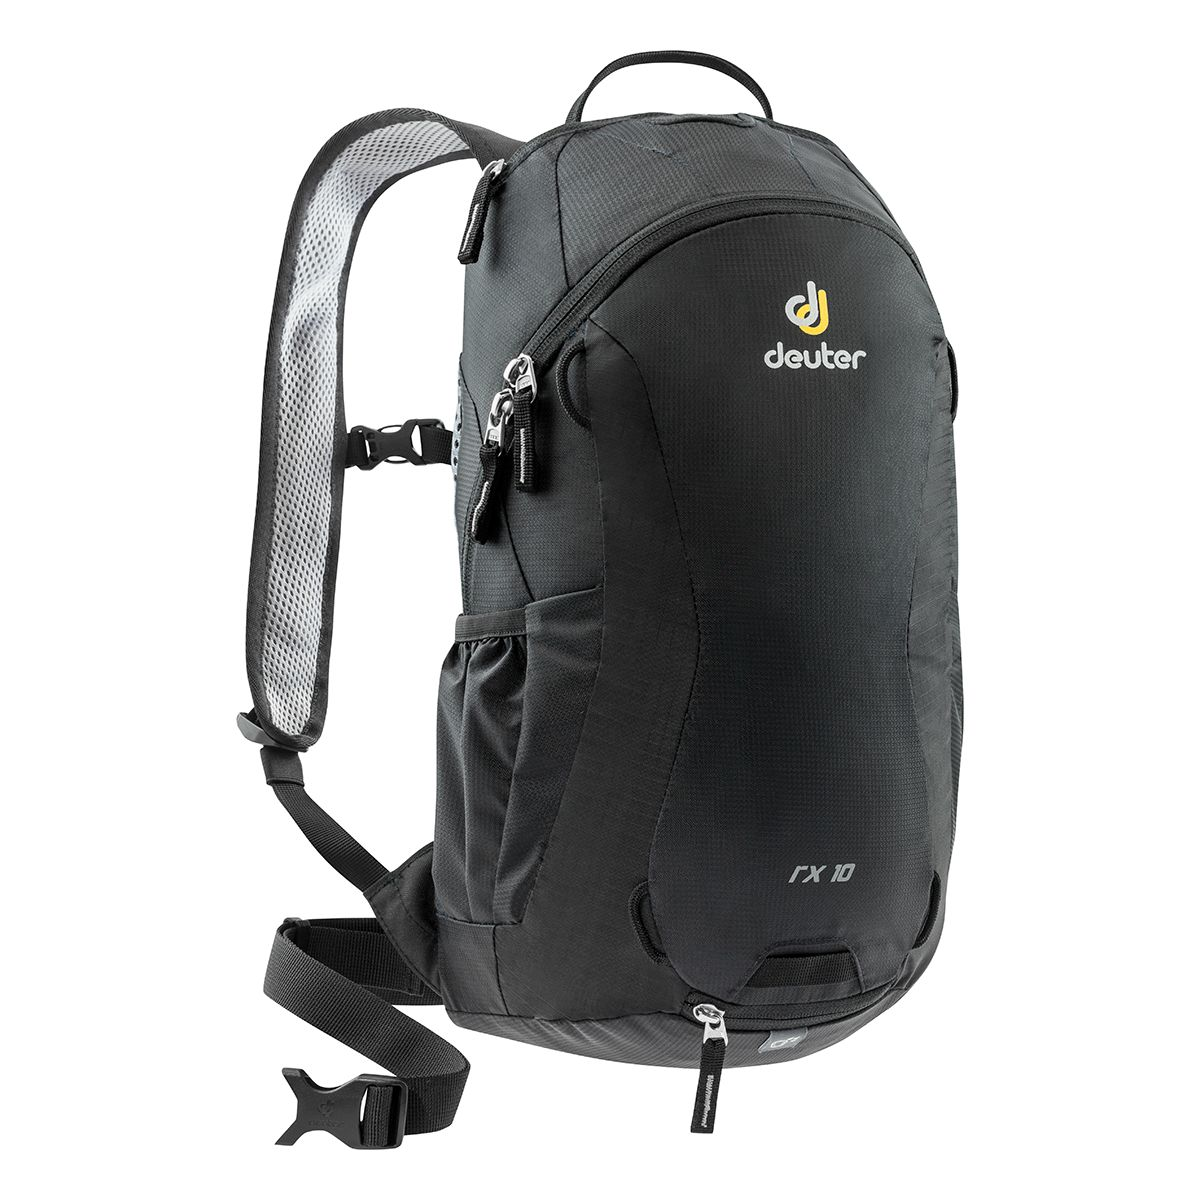 RX10 bike backpack